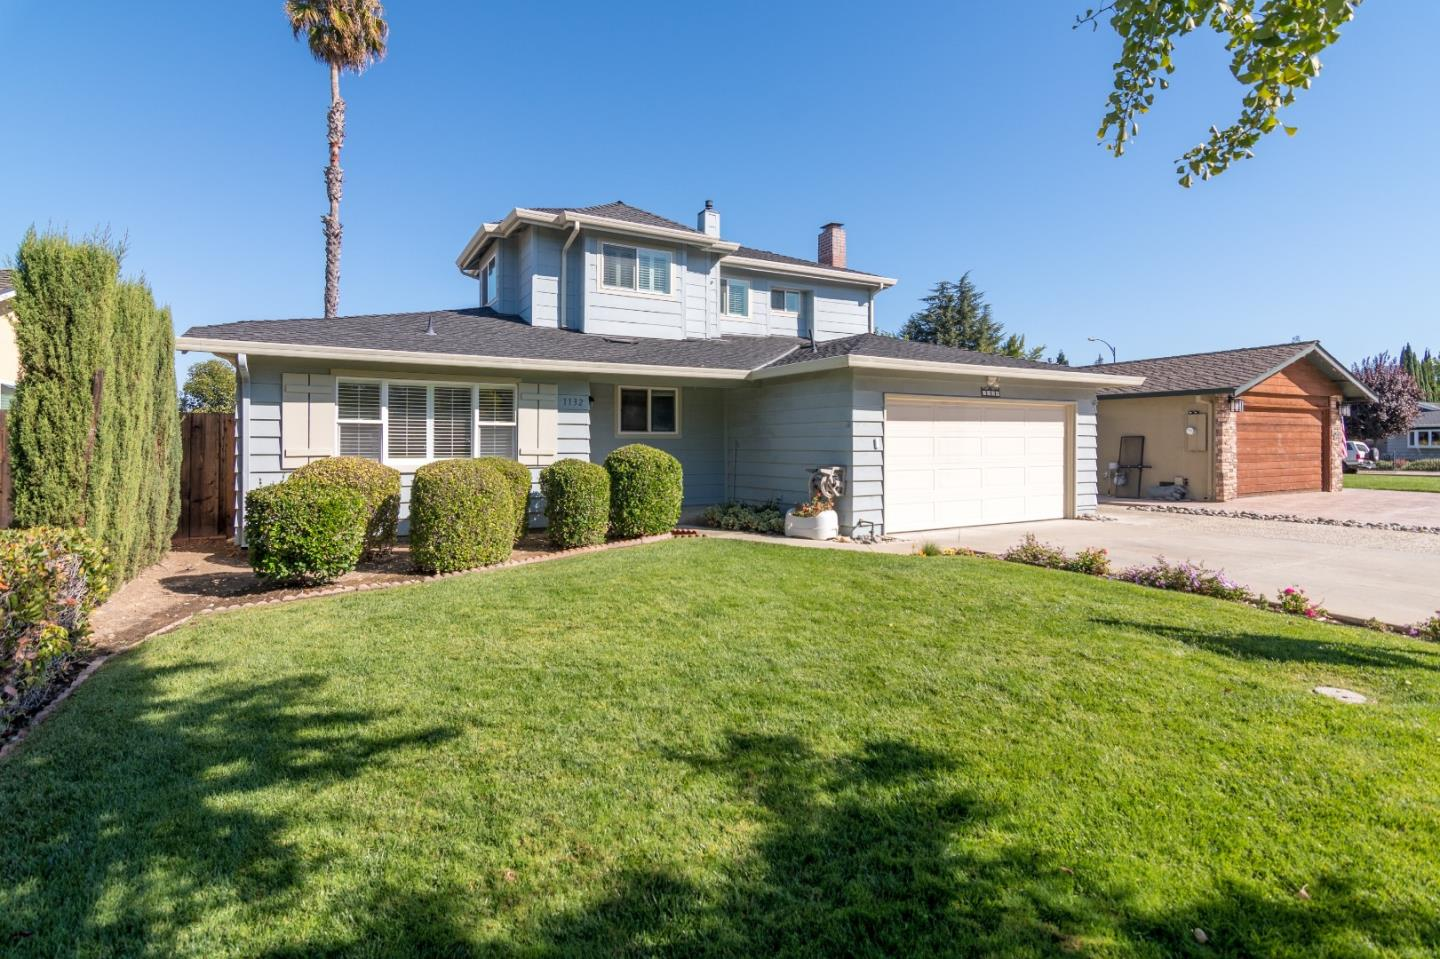 1132 FAWN DR, CAMPBELL, CA 95008